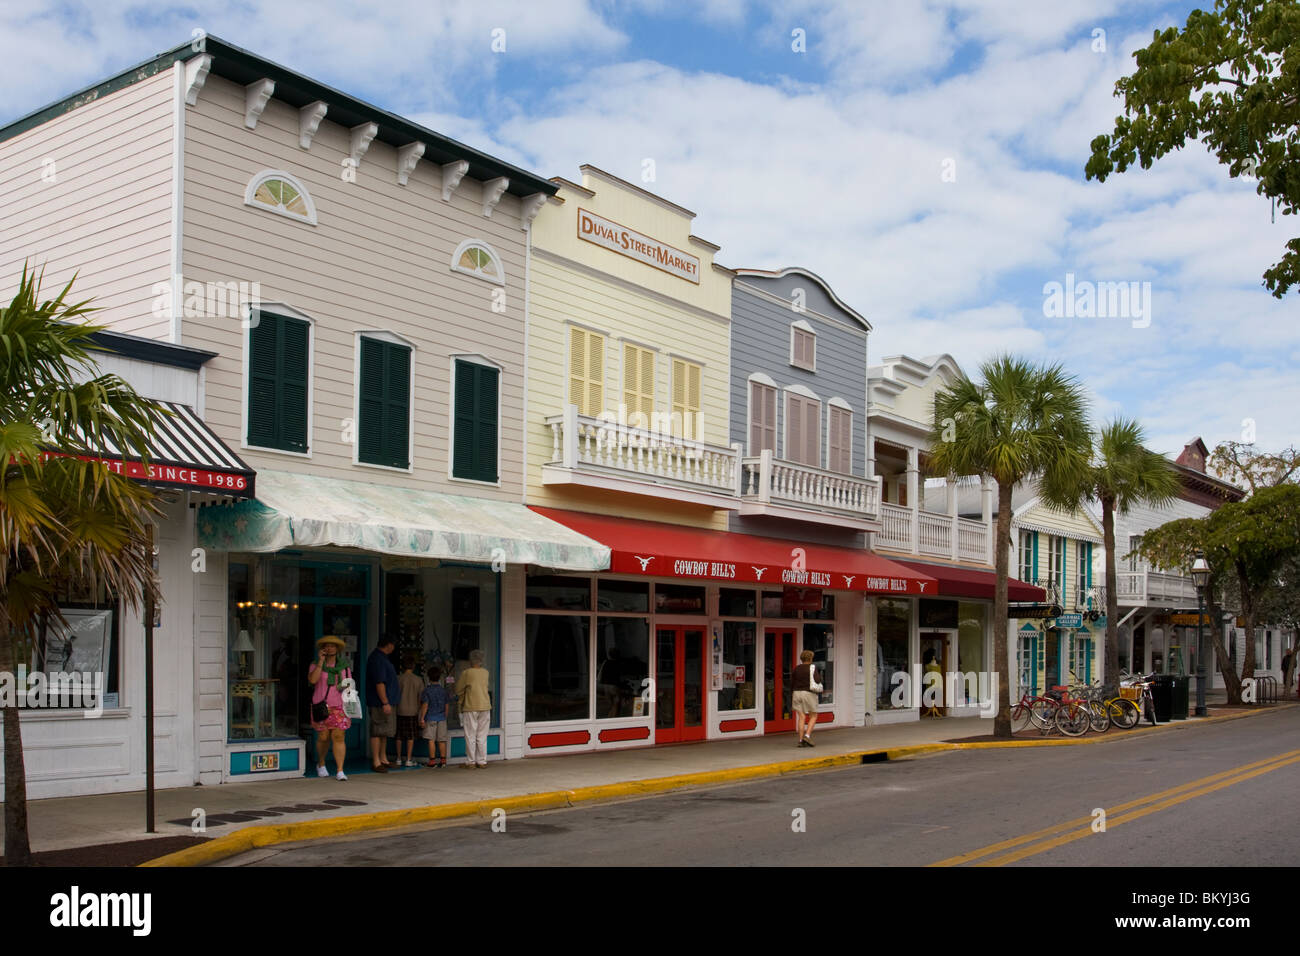 Typical Wood Frame Buildings Of Duval Street Shops In Key West, Florida,  USA.